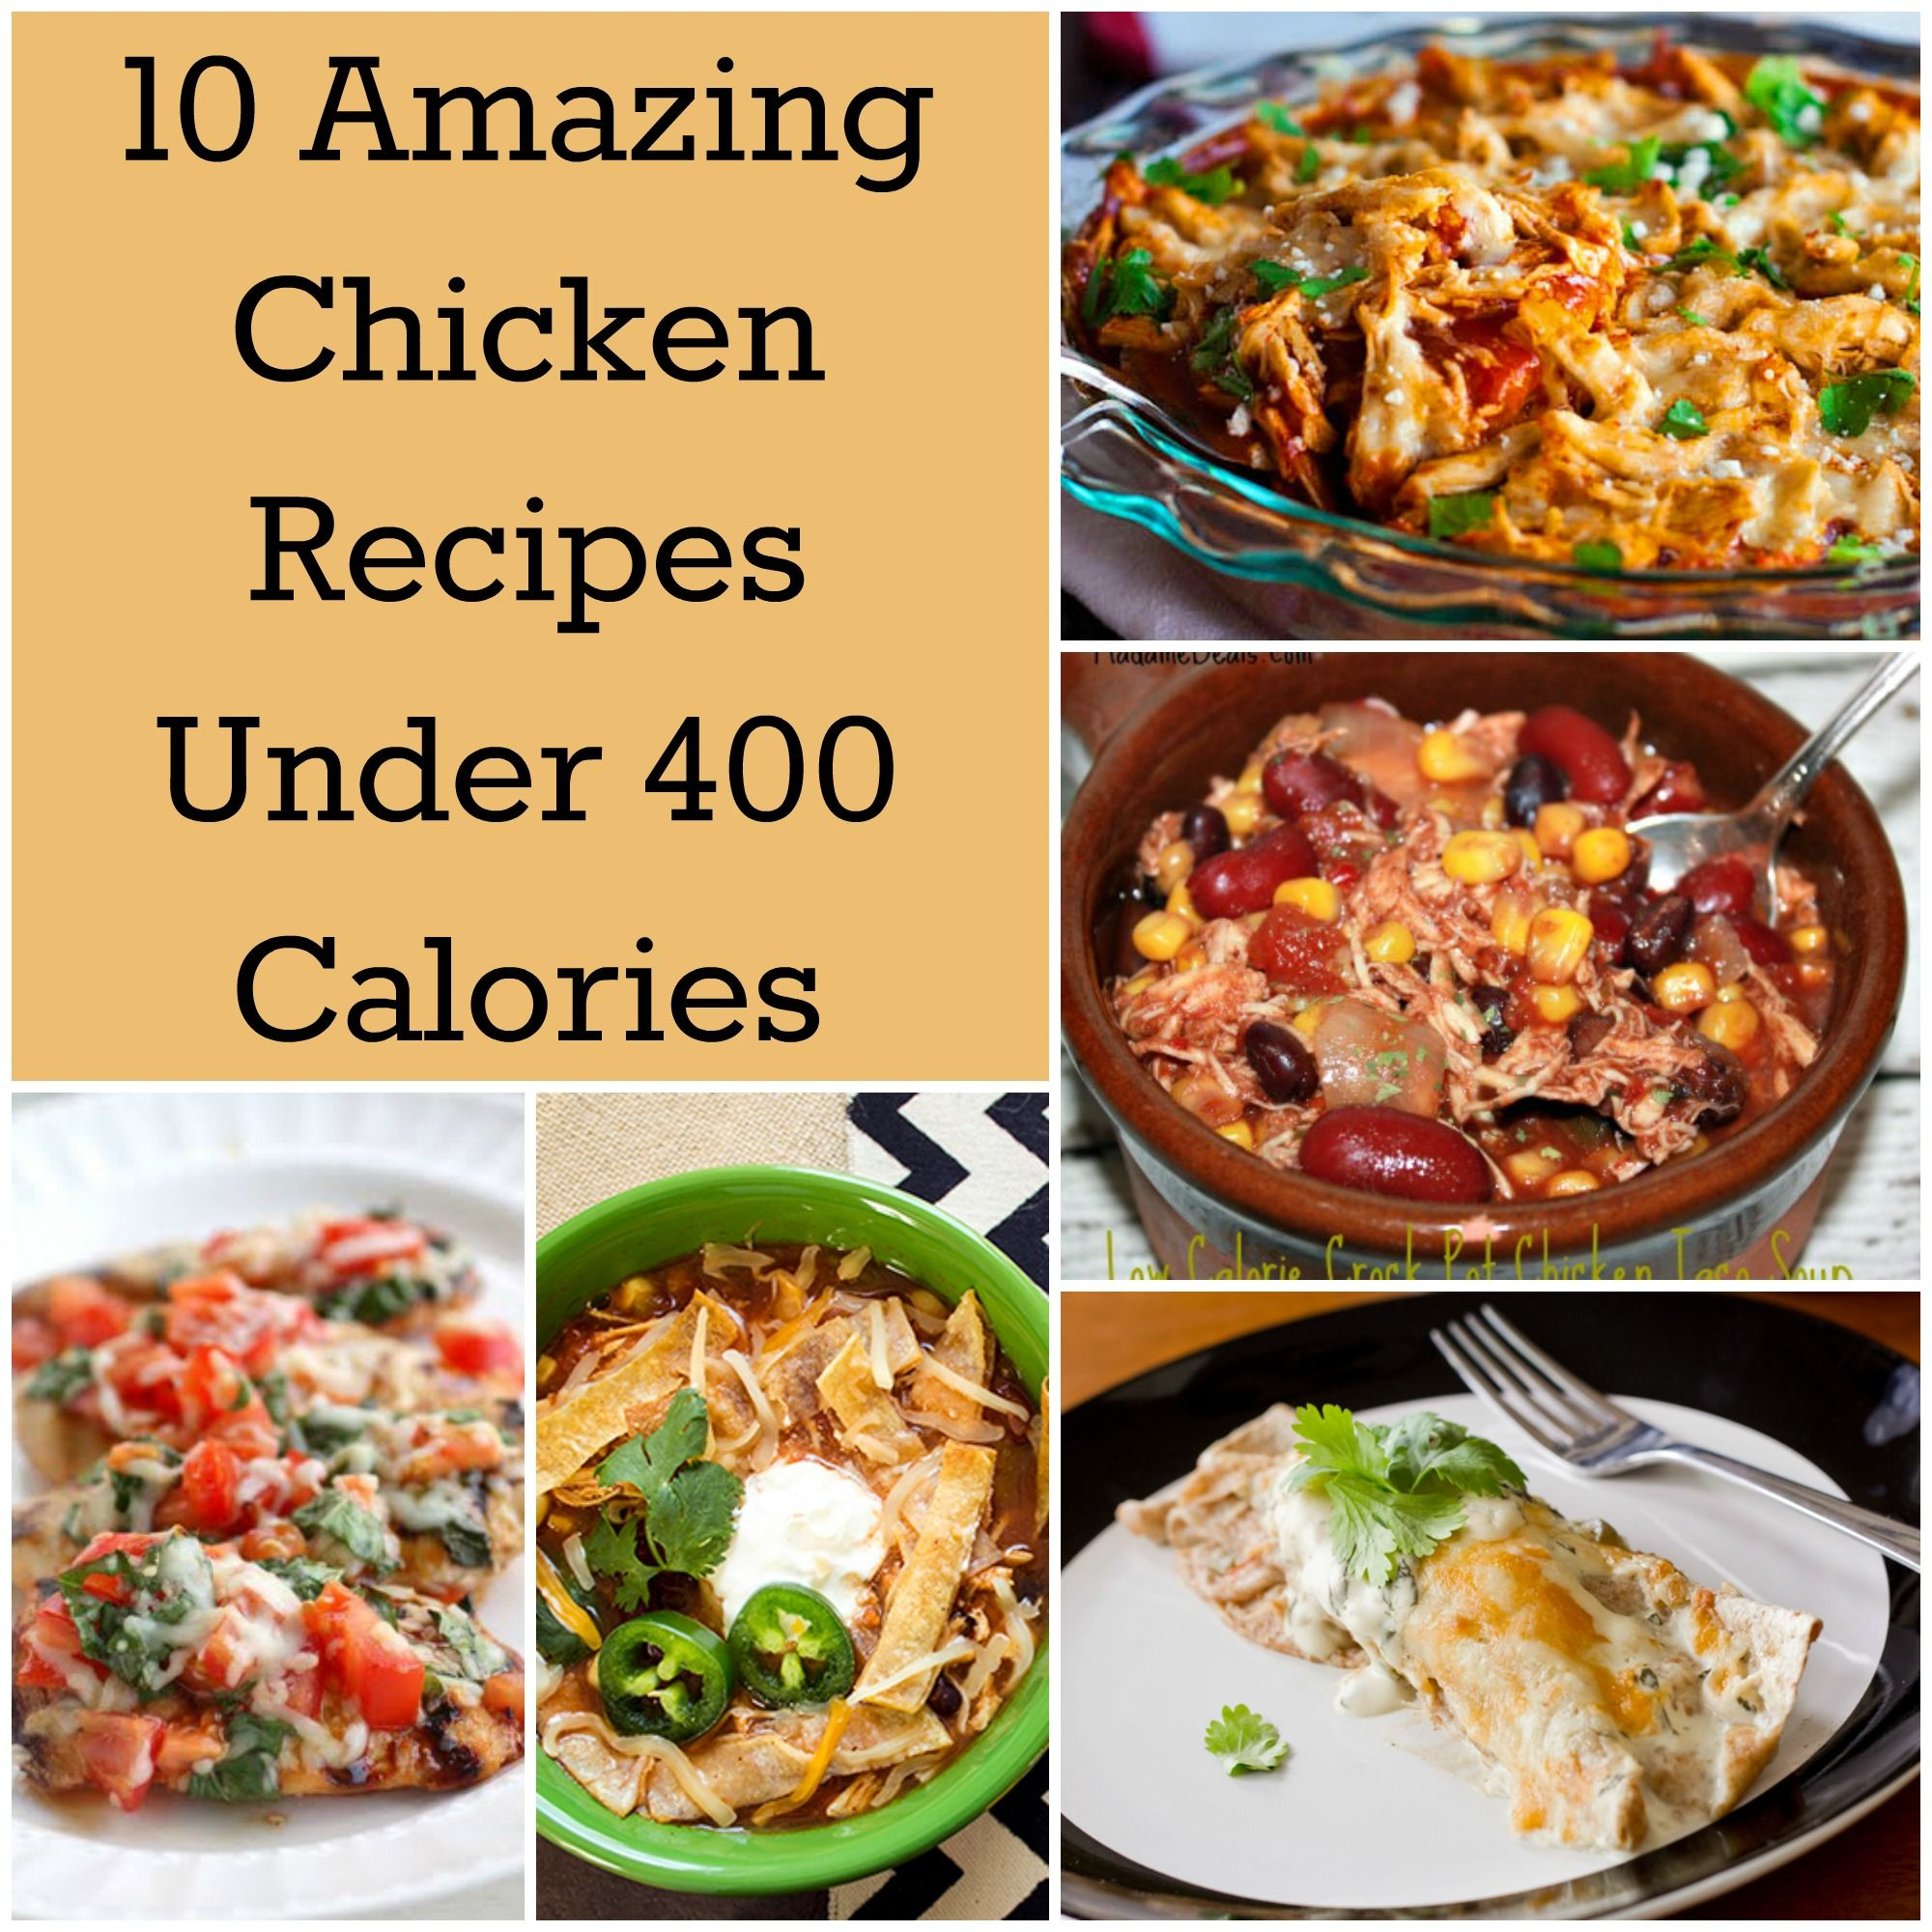 Healthy Dinner Recipes Under 3: 10 Amazing Chicken Recipes Under 400 Calories